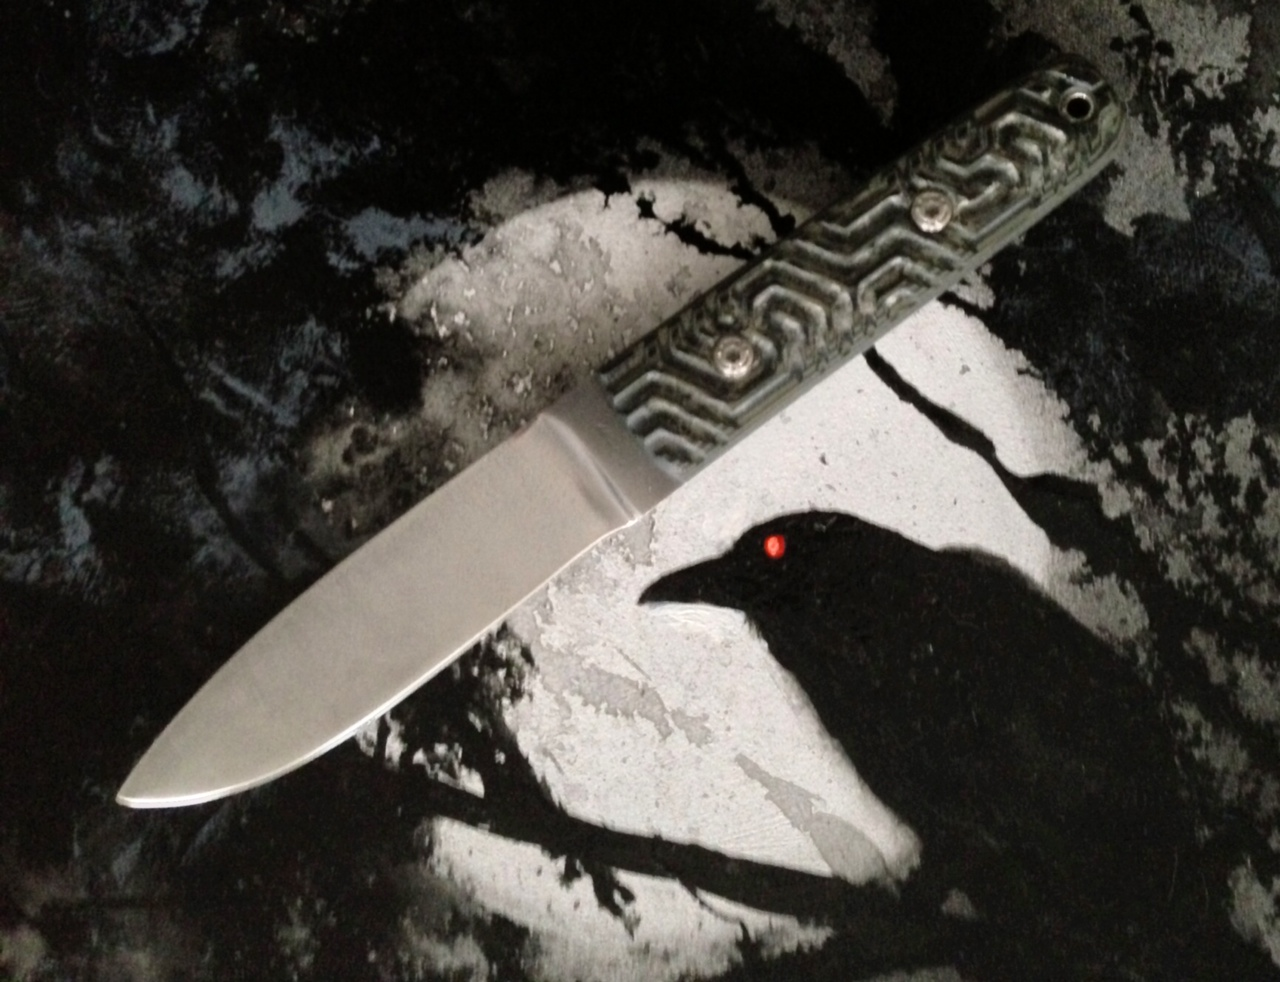 Handmade Tactical Fighter Knife